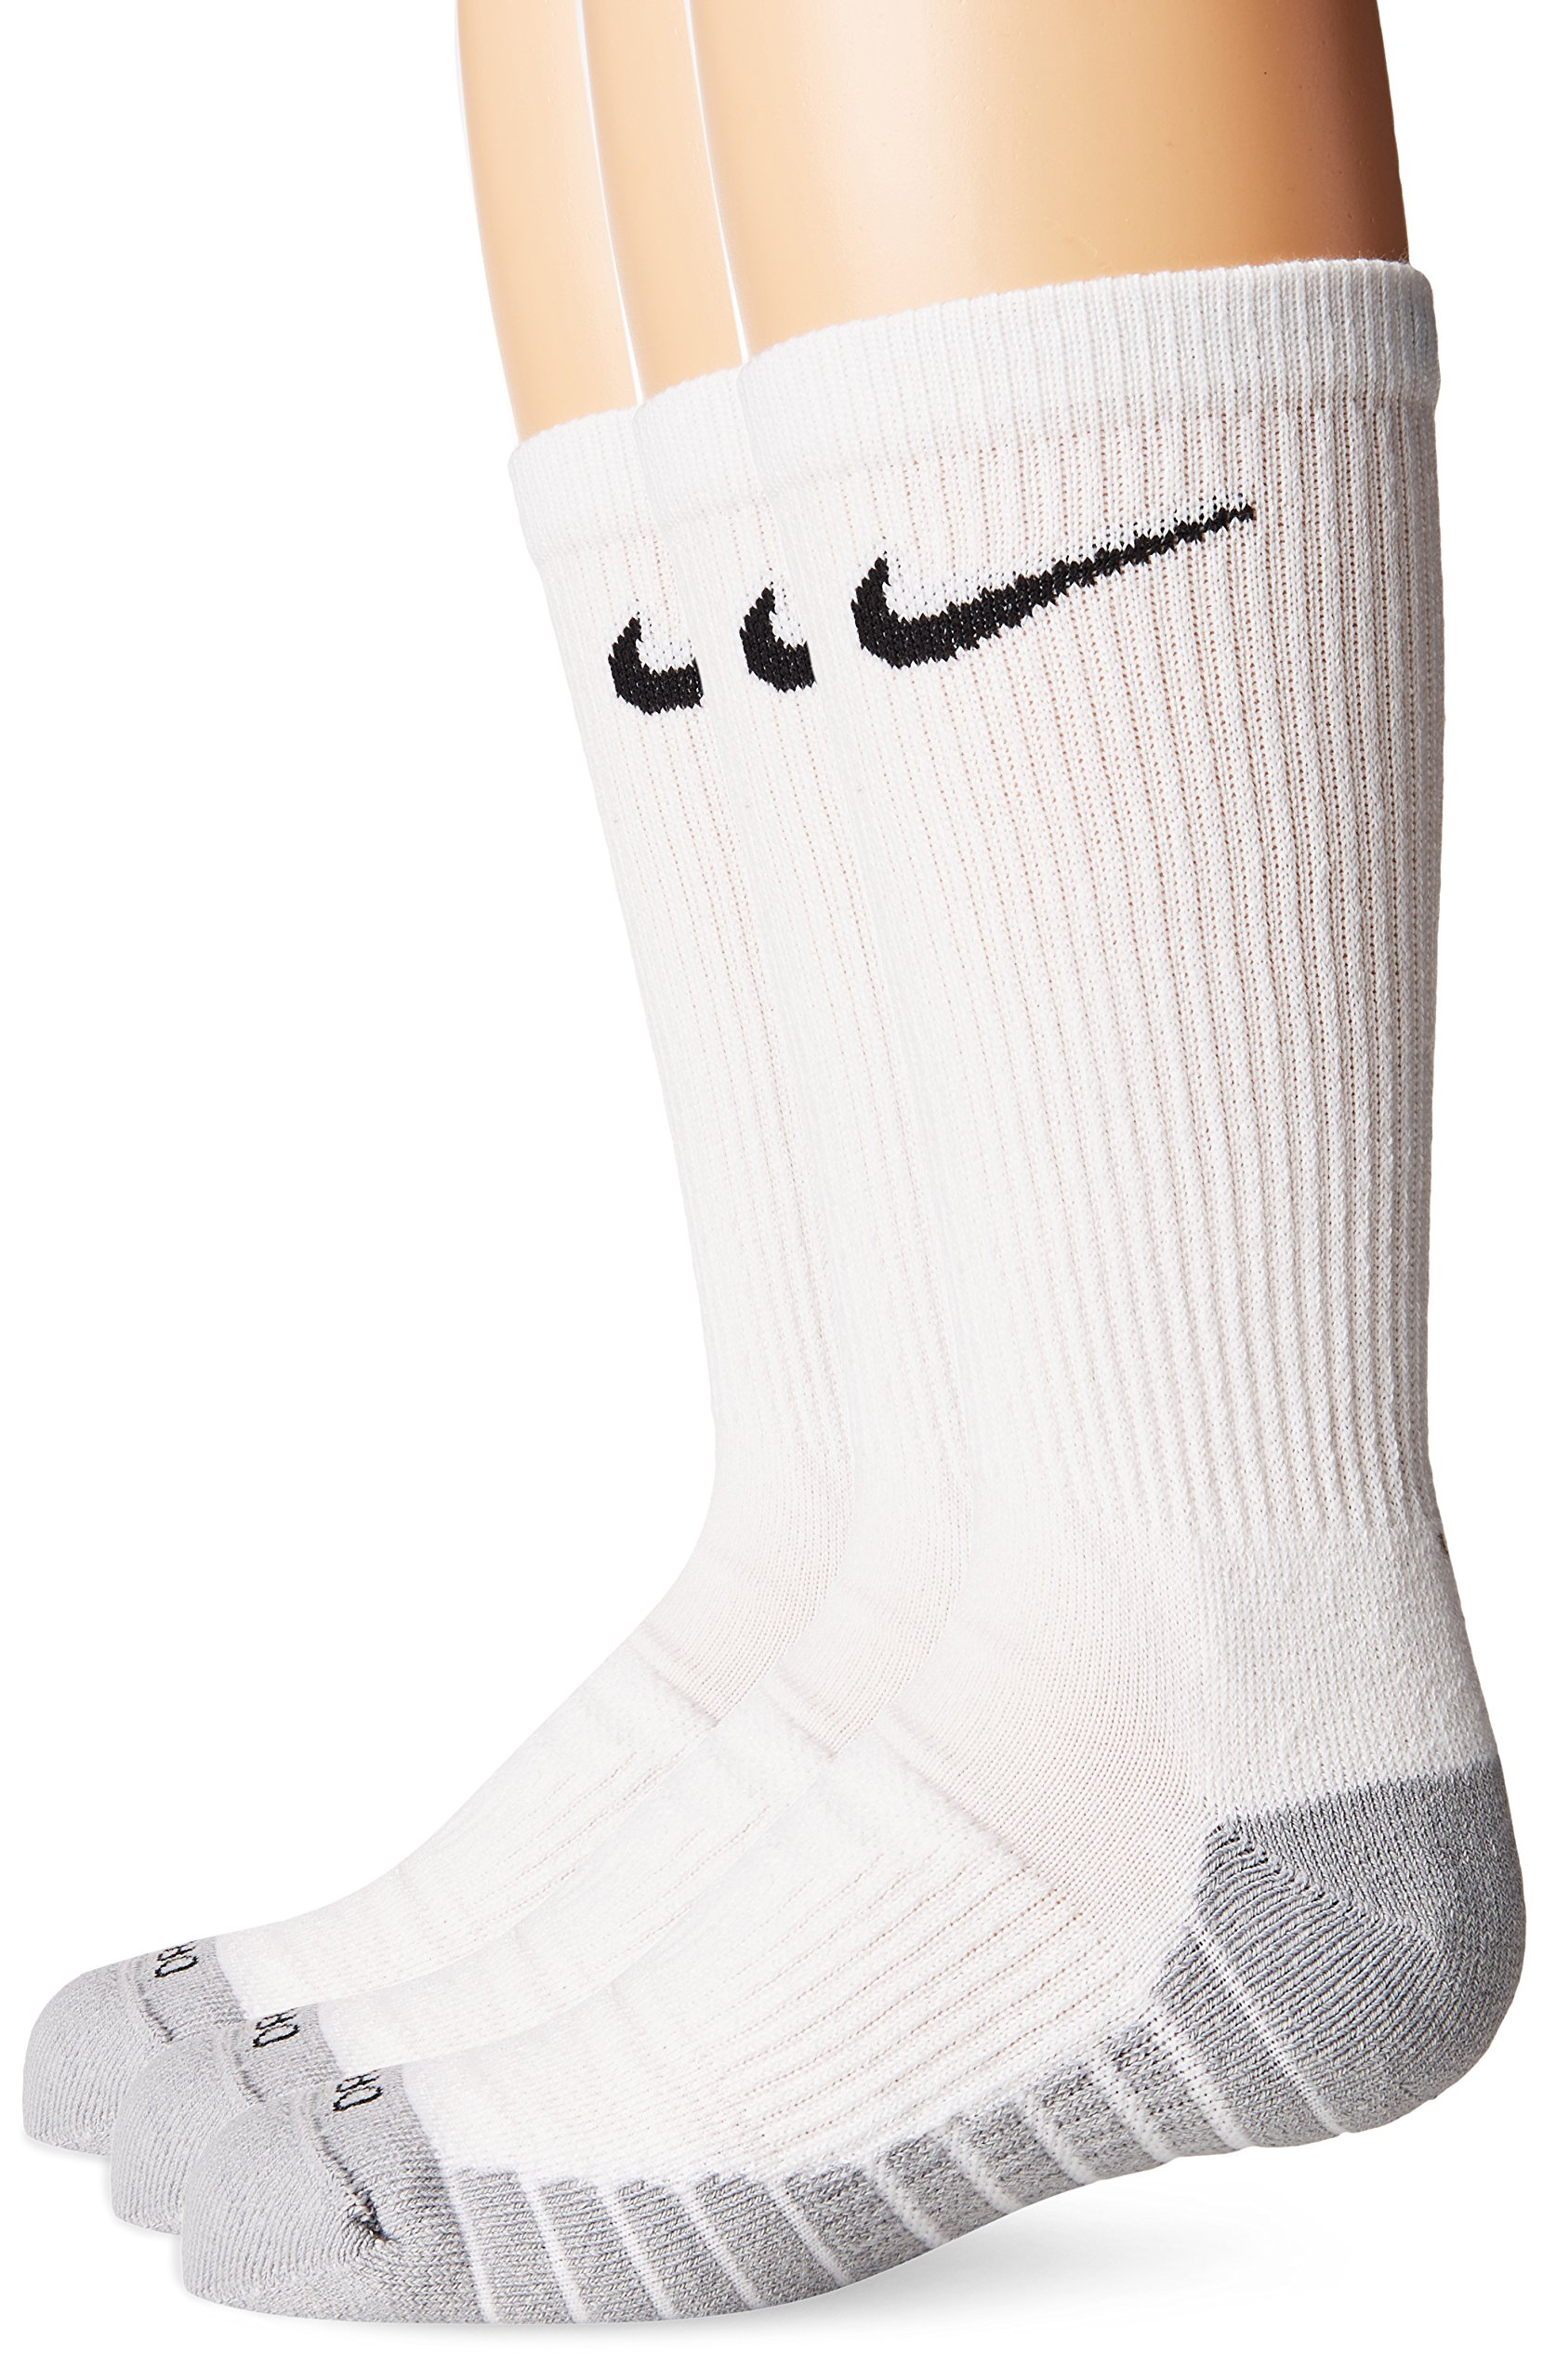 NIKE Kids' Unisex Everyday Max Cushion Crew Socks (3 Pairs), White/Wolf Grey/Black, Medium